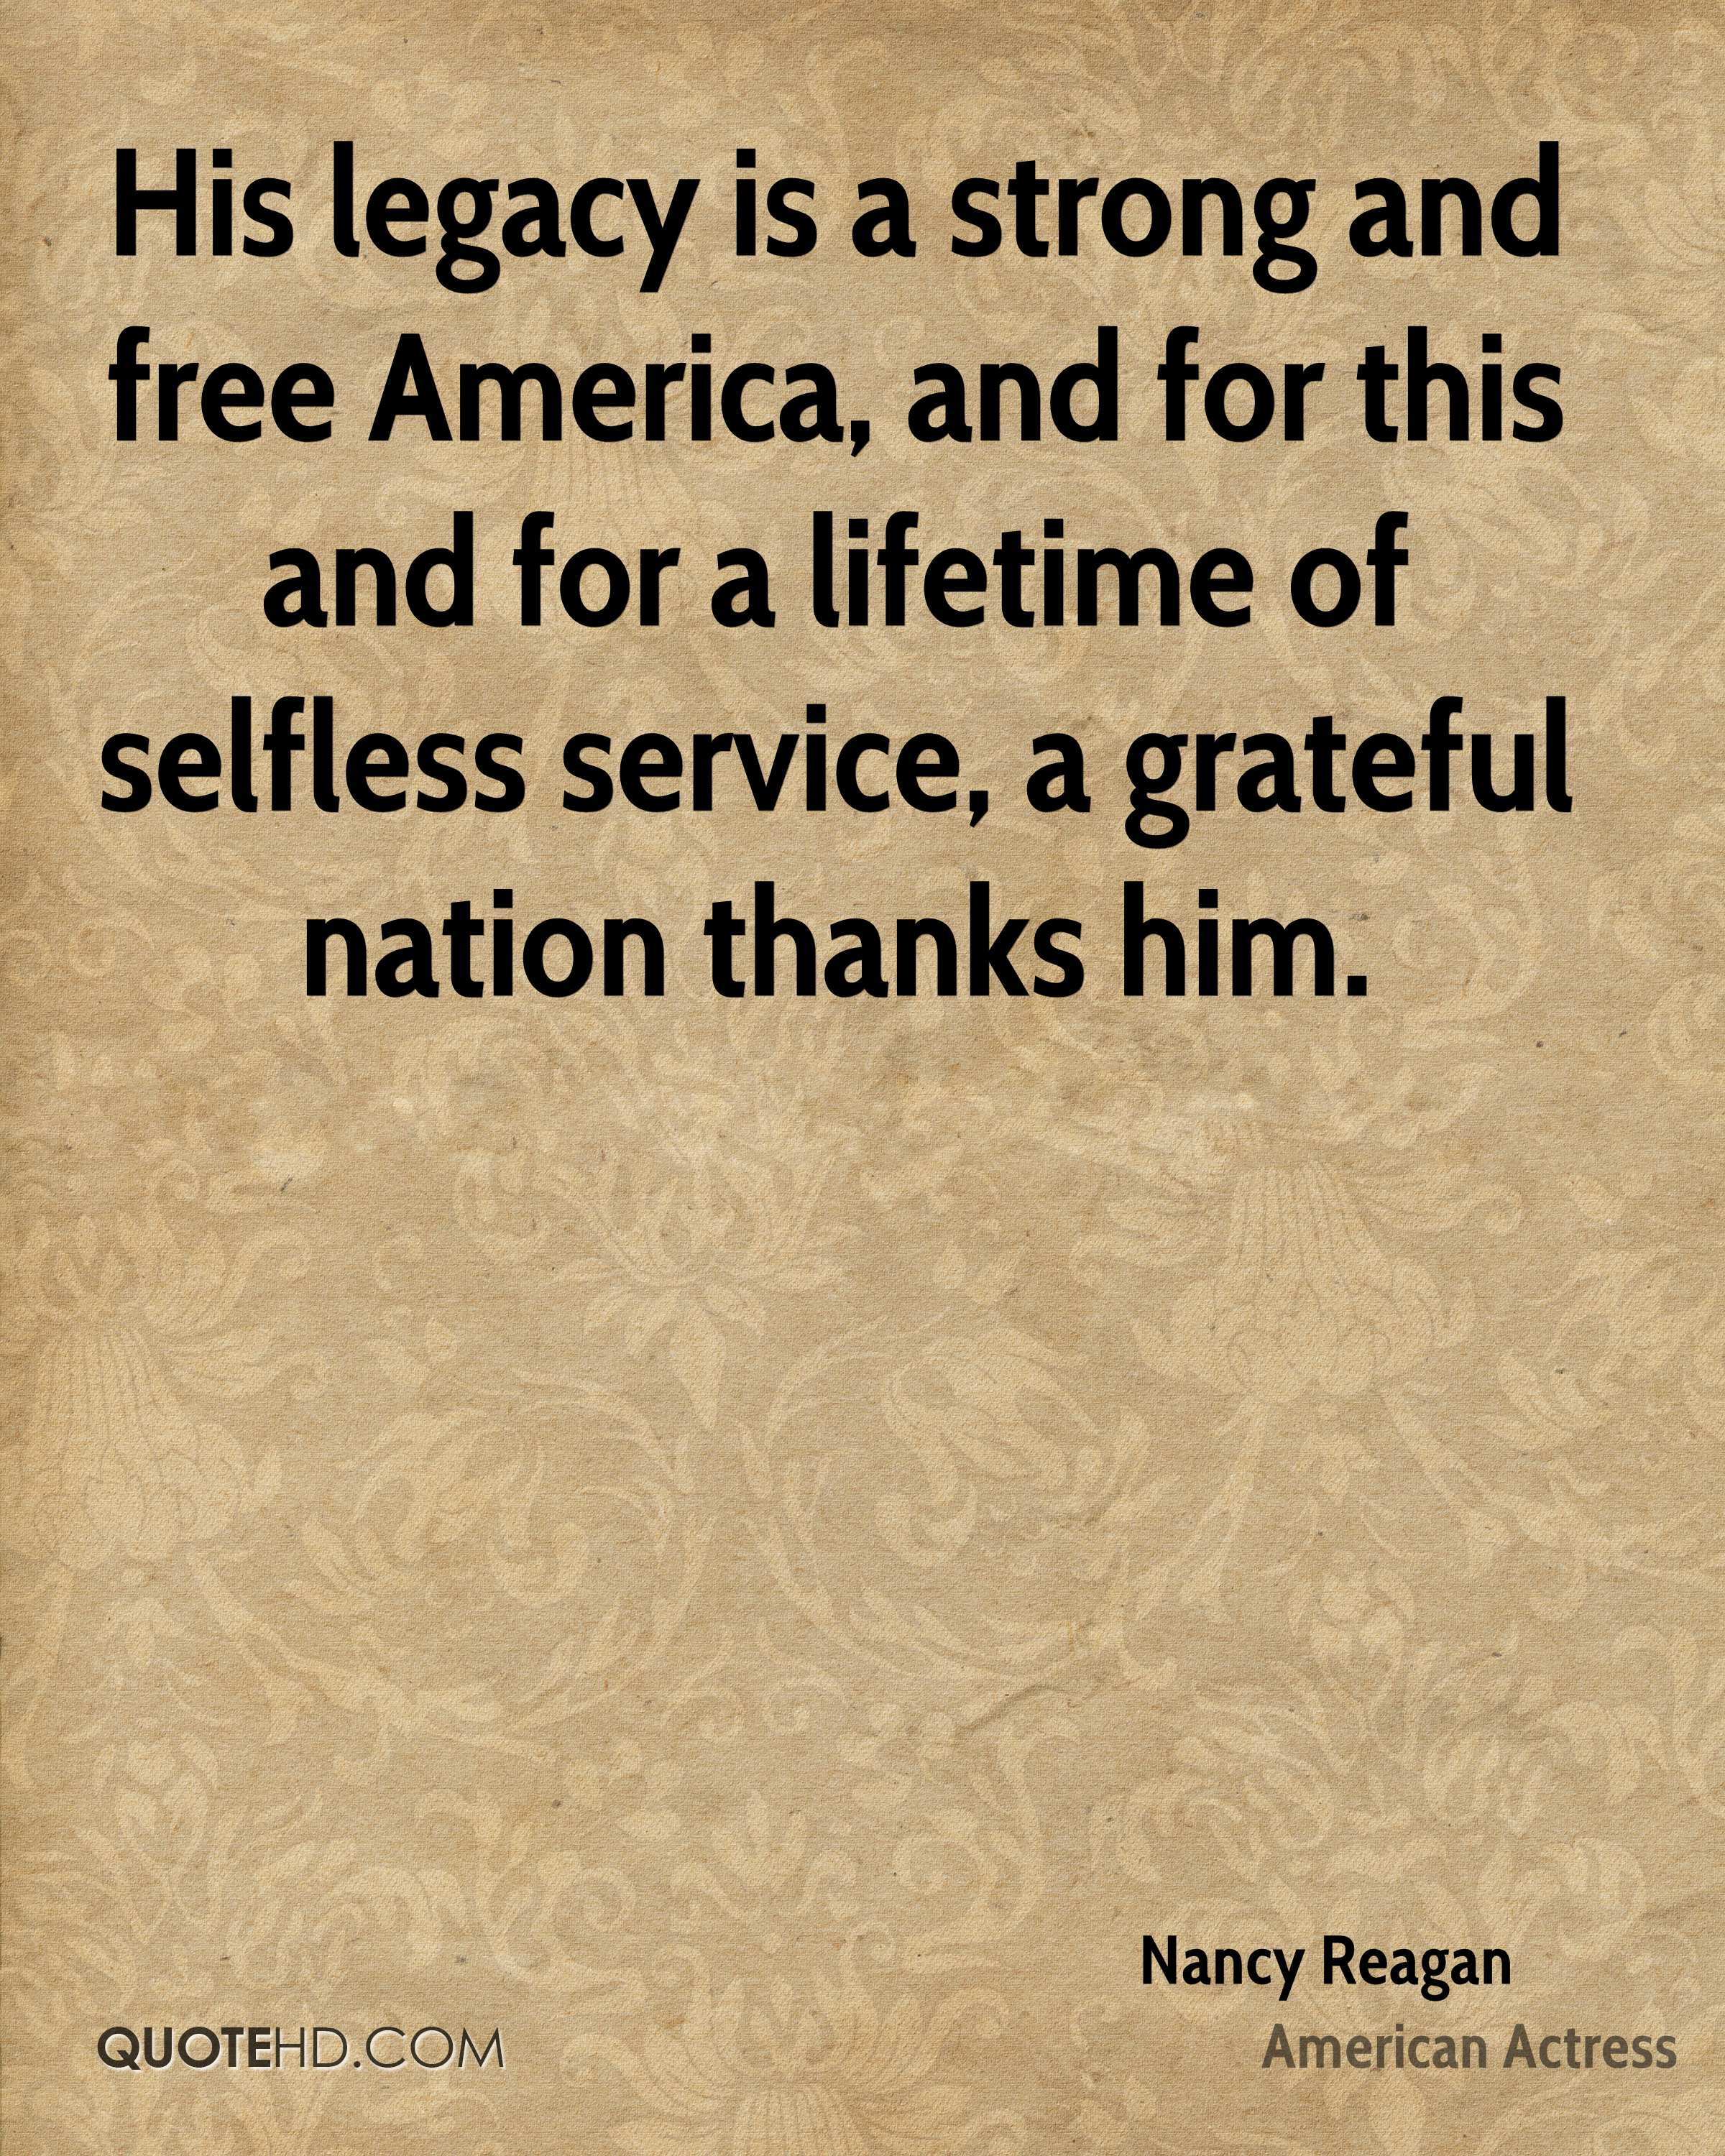 His legacy is a strong and free America, and for this and for a lifetime of selfless service, a grateful nation thanks him.